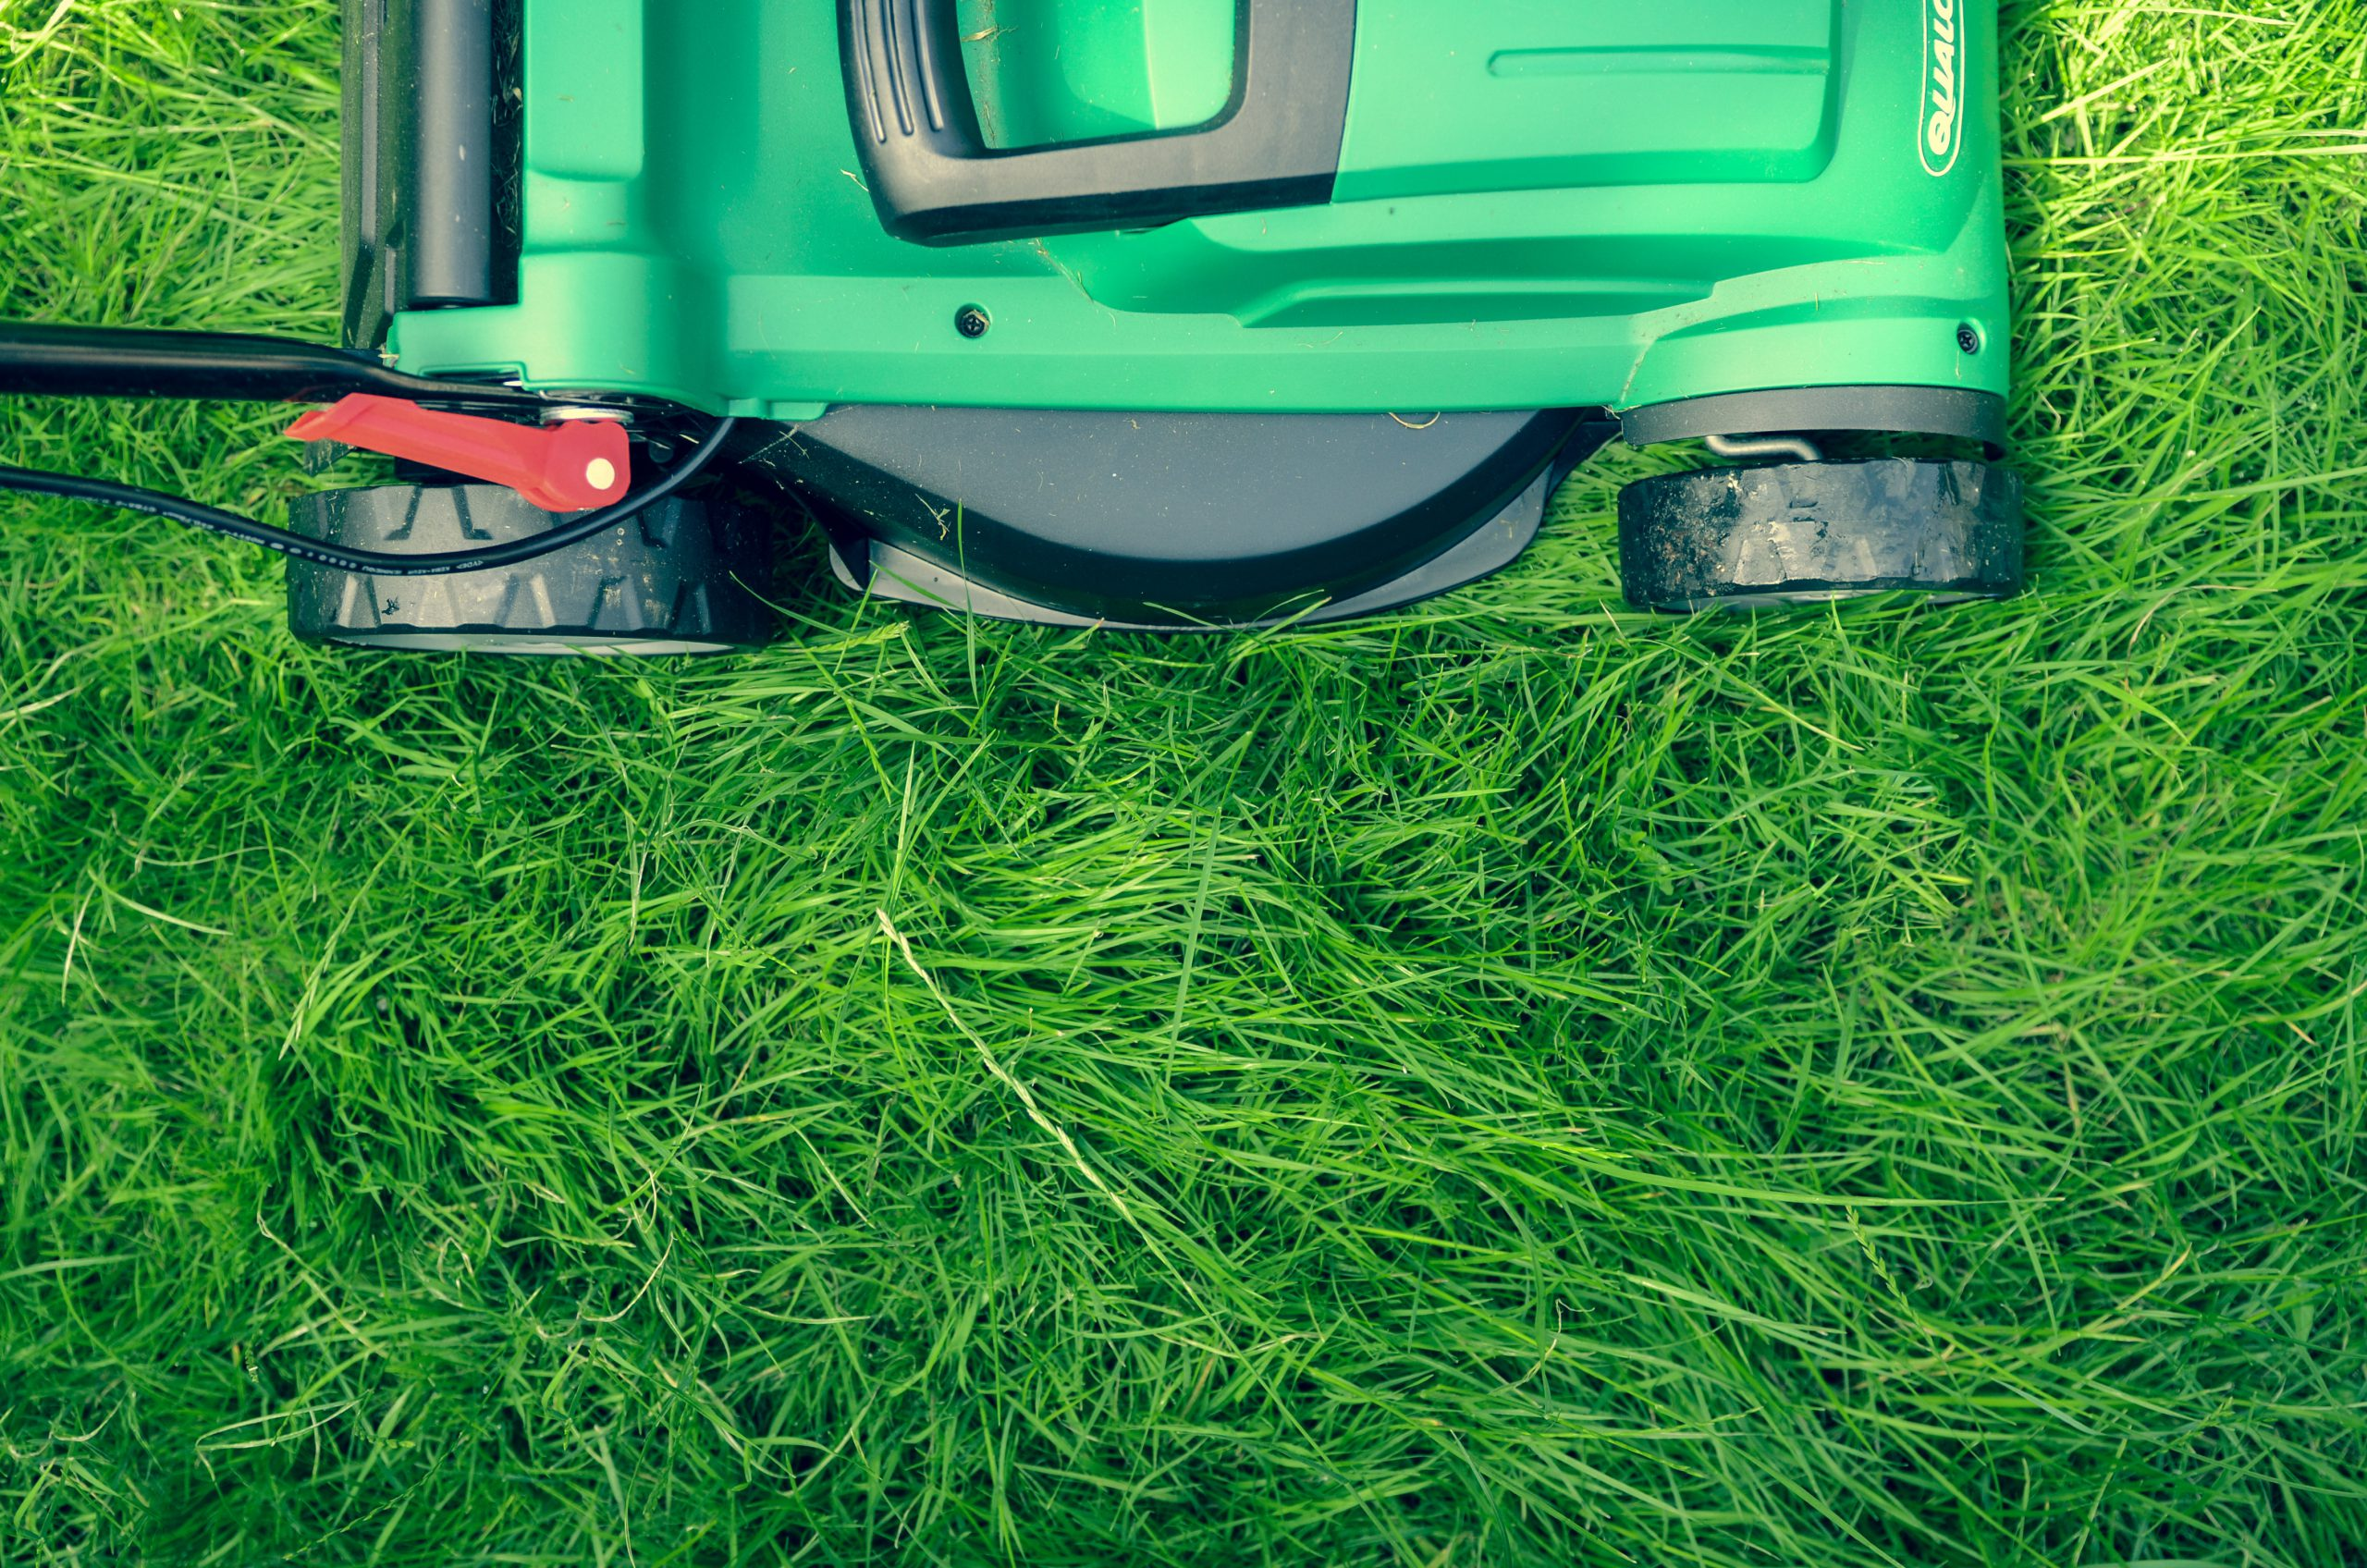 Double Cutting Your Lawn: Is It Worth It?